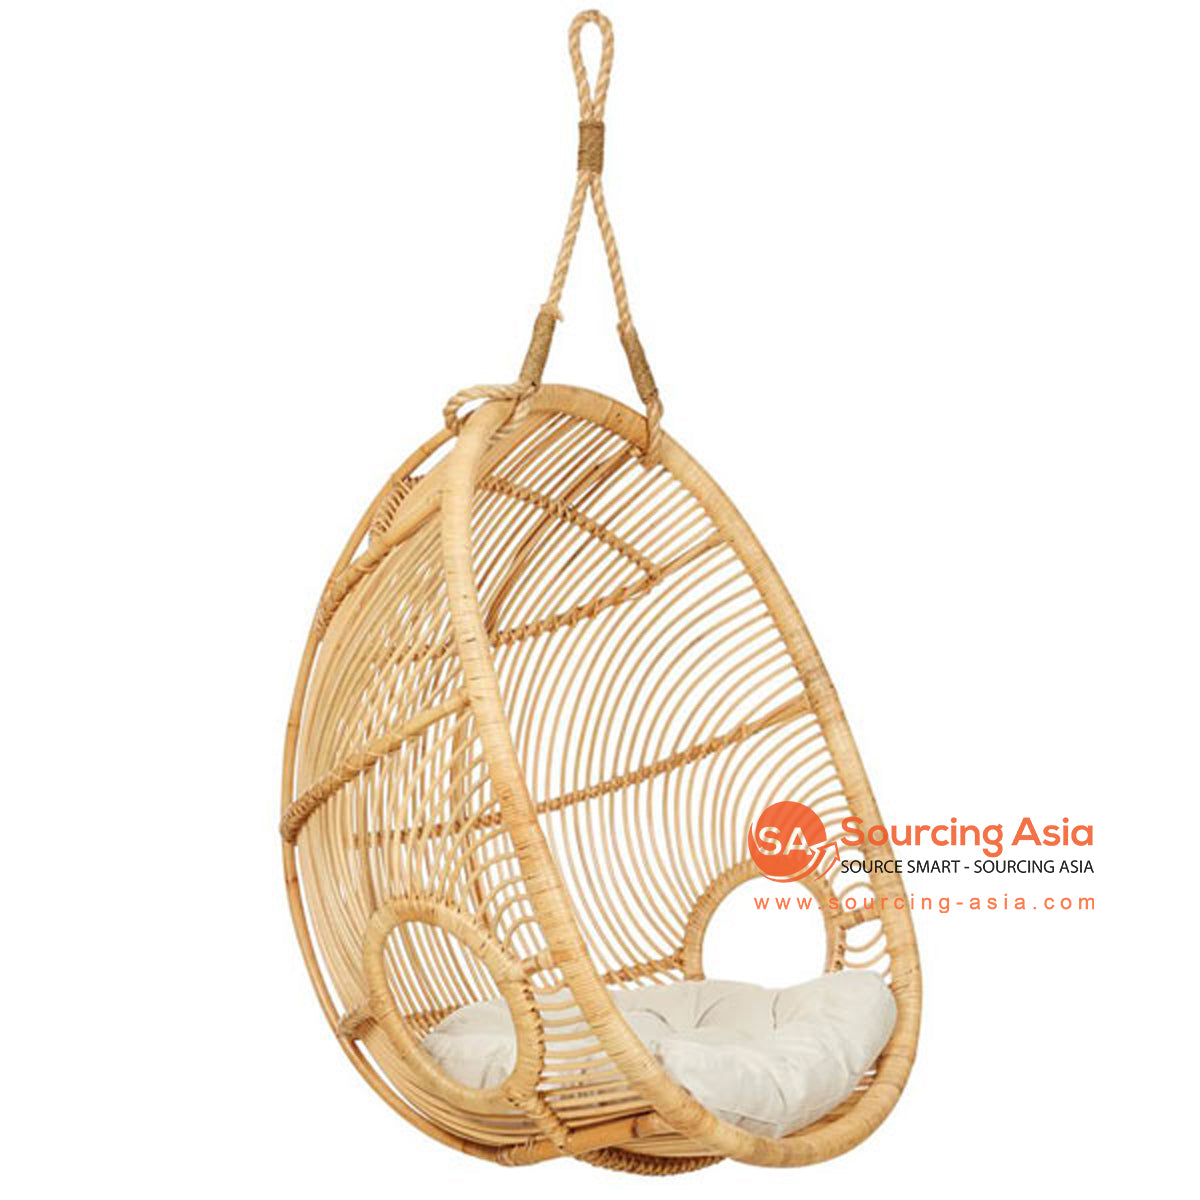 SHL175-1 NATURAL RATTAN HANGING CHAIR